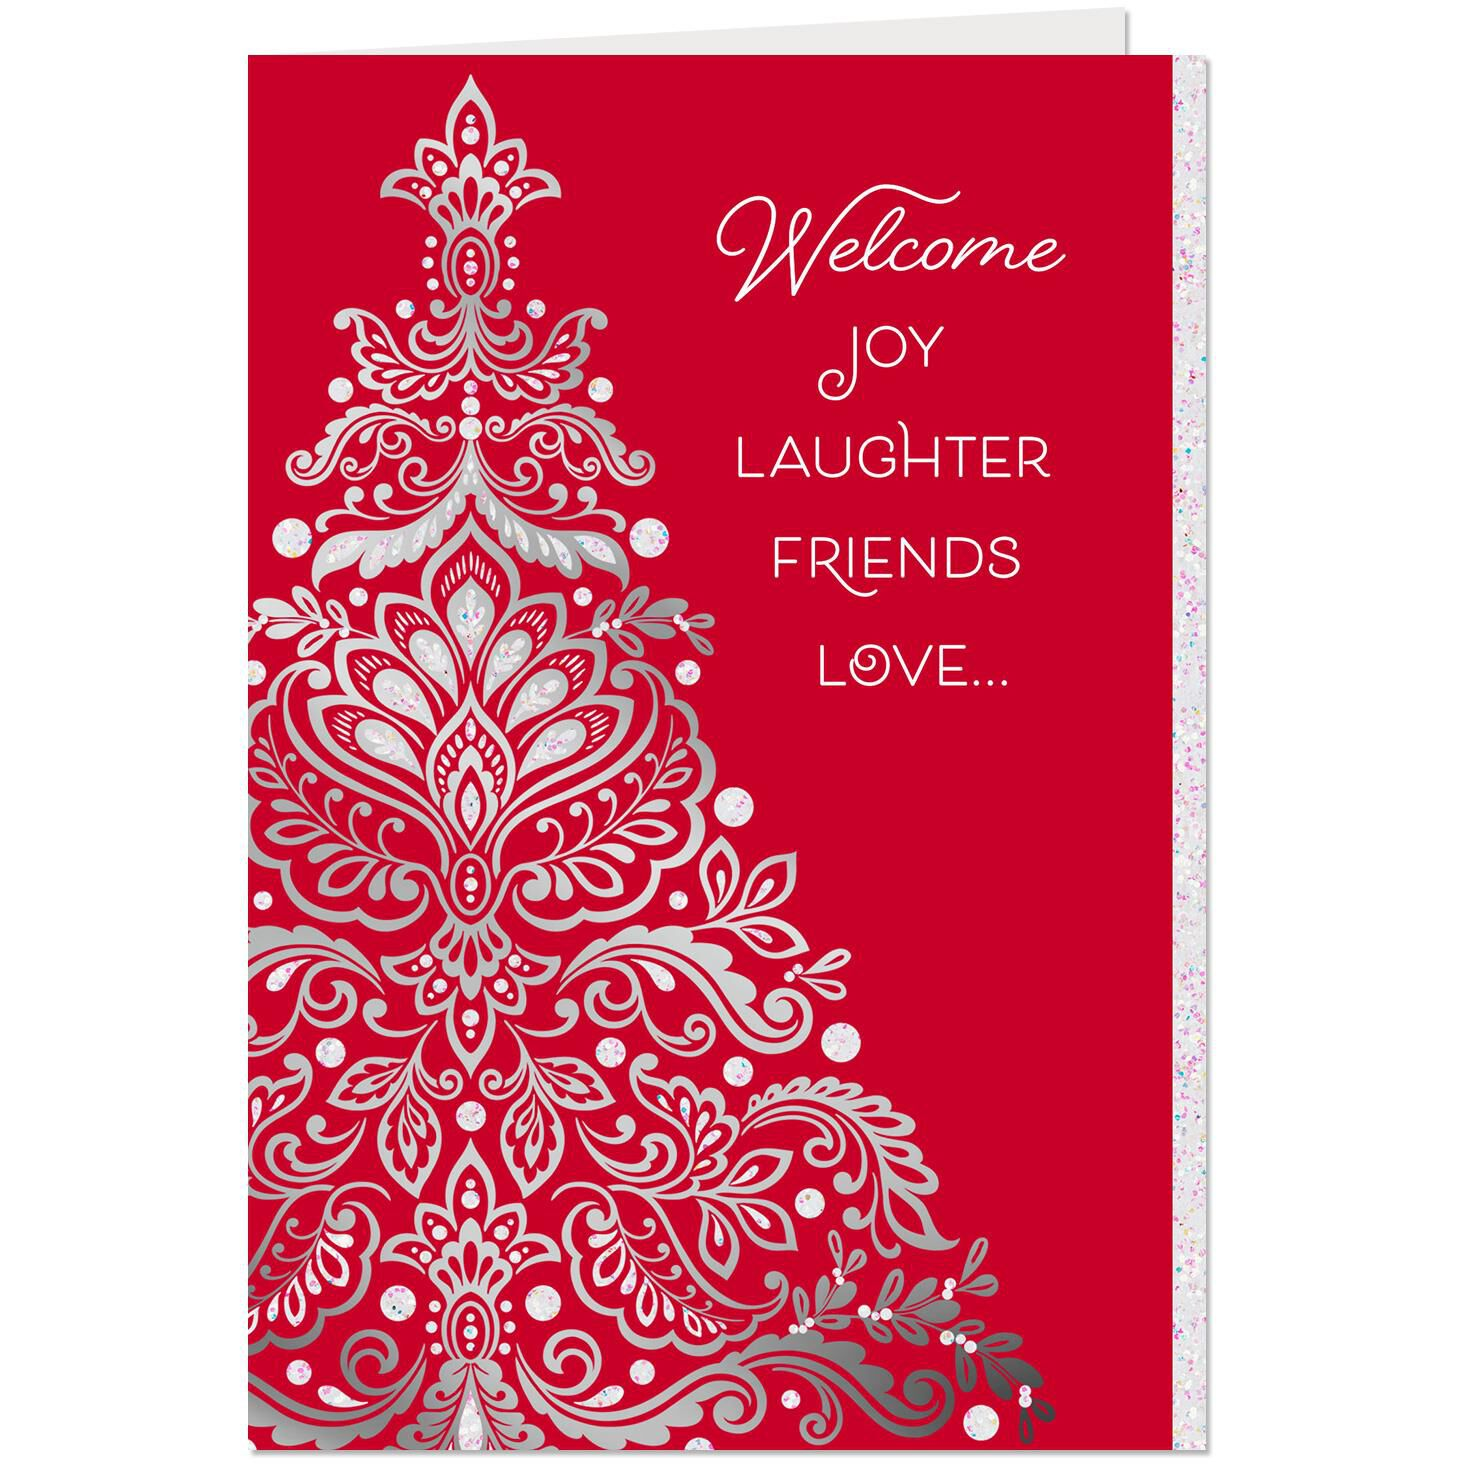 The Season Of Joy Laughter Friends And Love Christmas Card